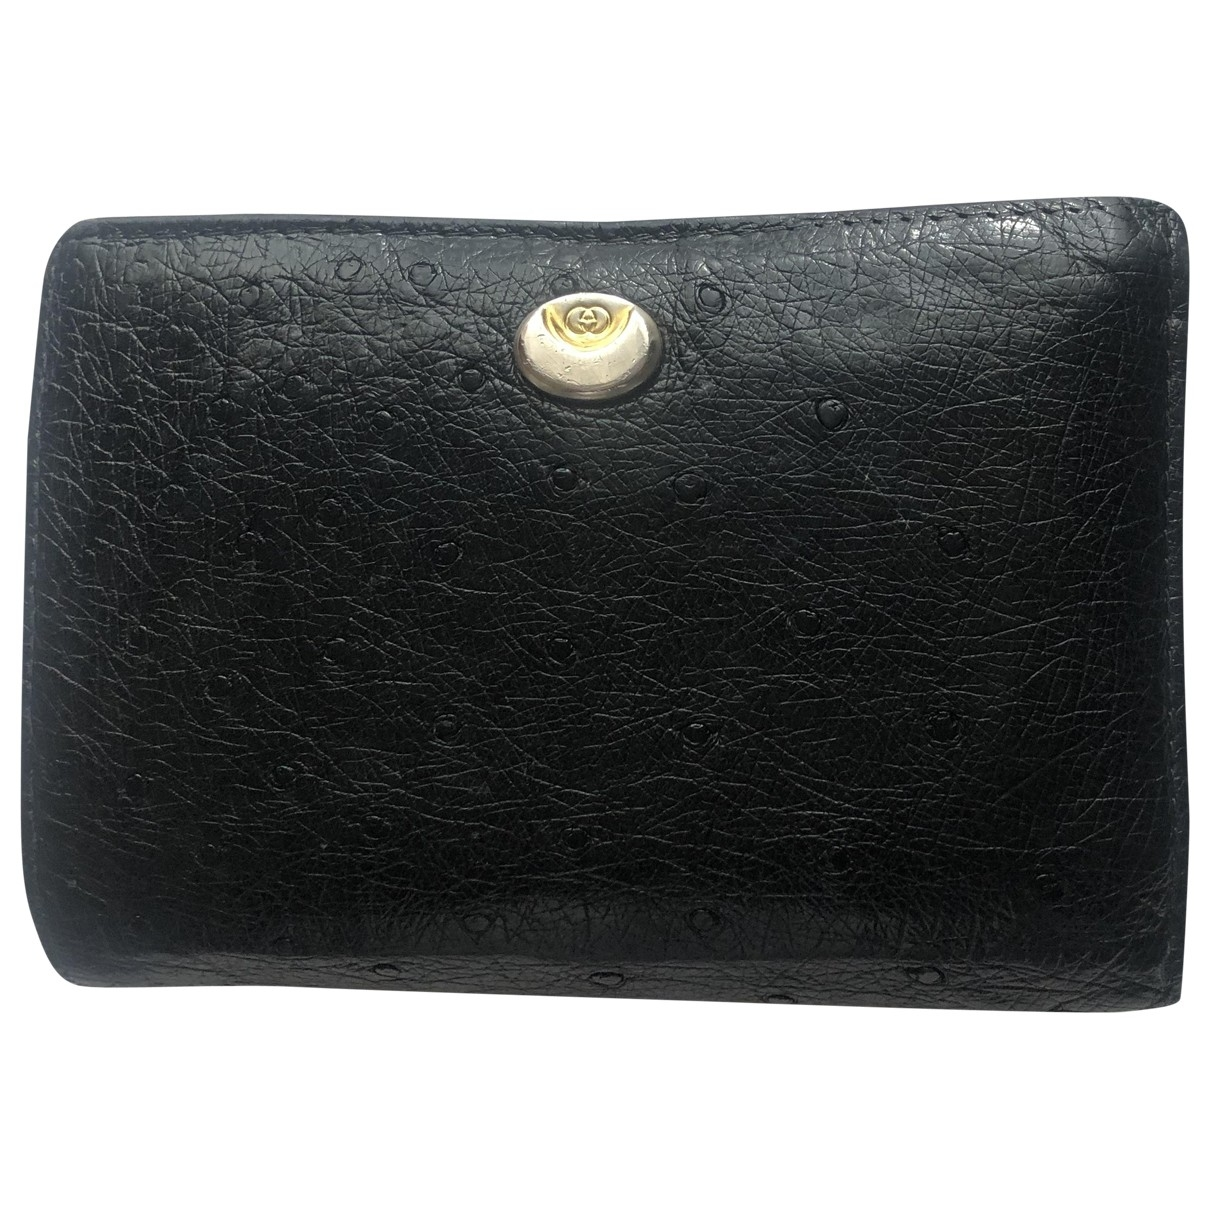 Gucci \N Black Leather wallet for Women \N